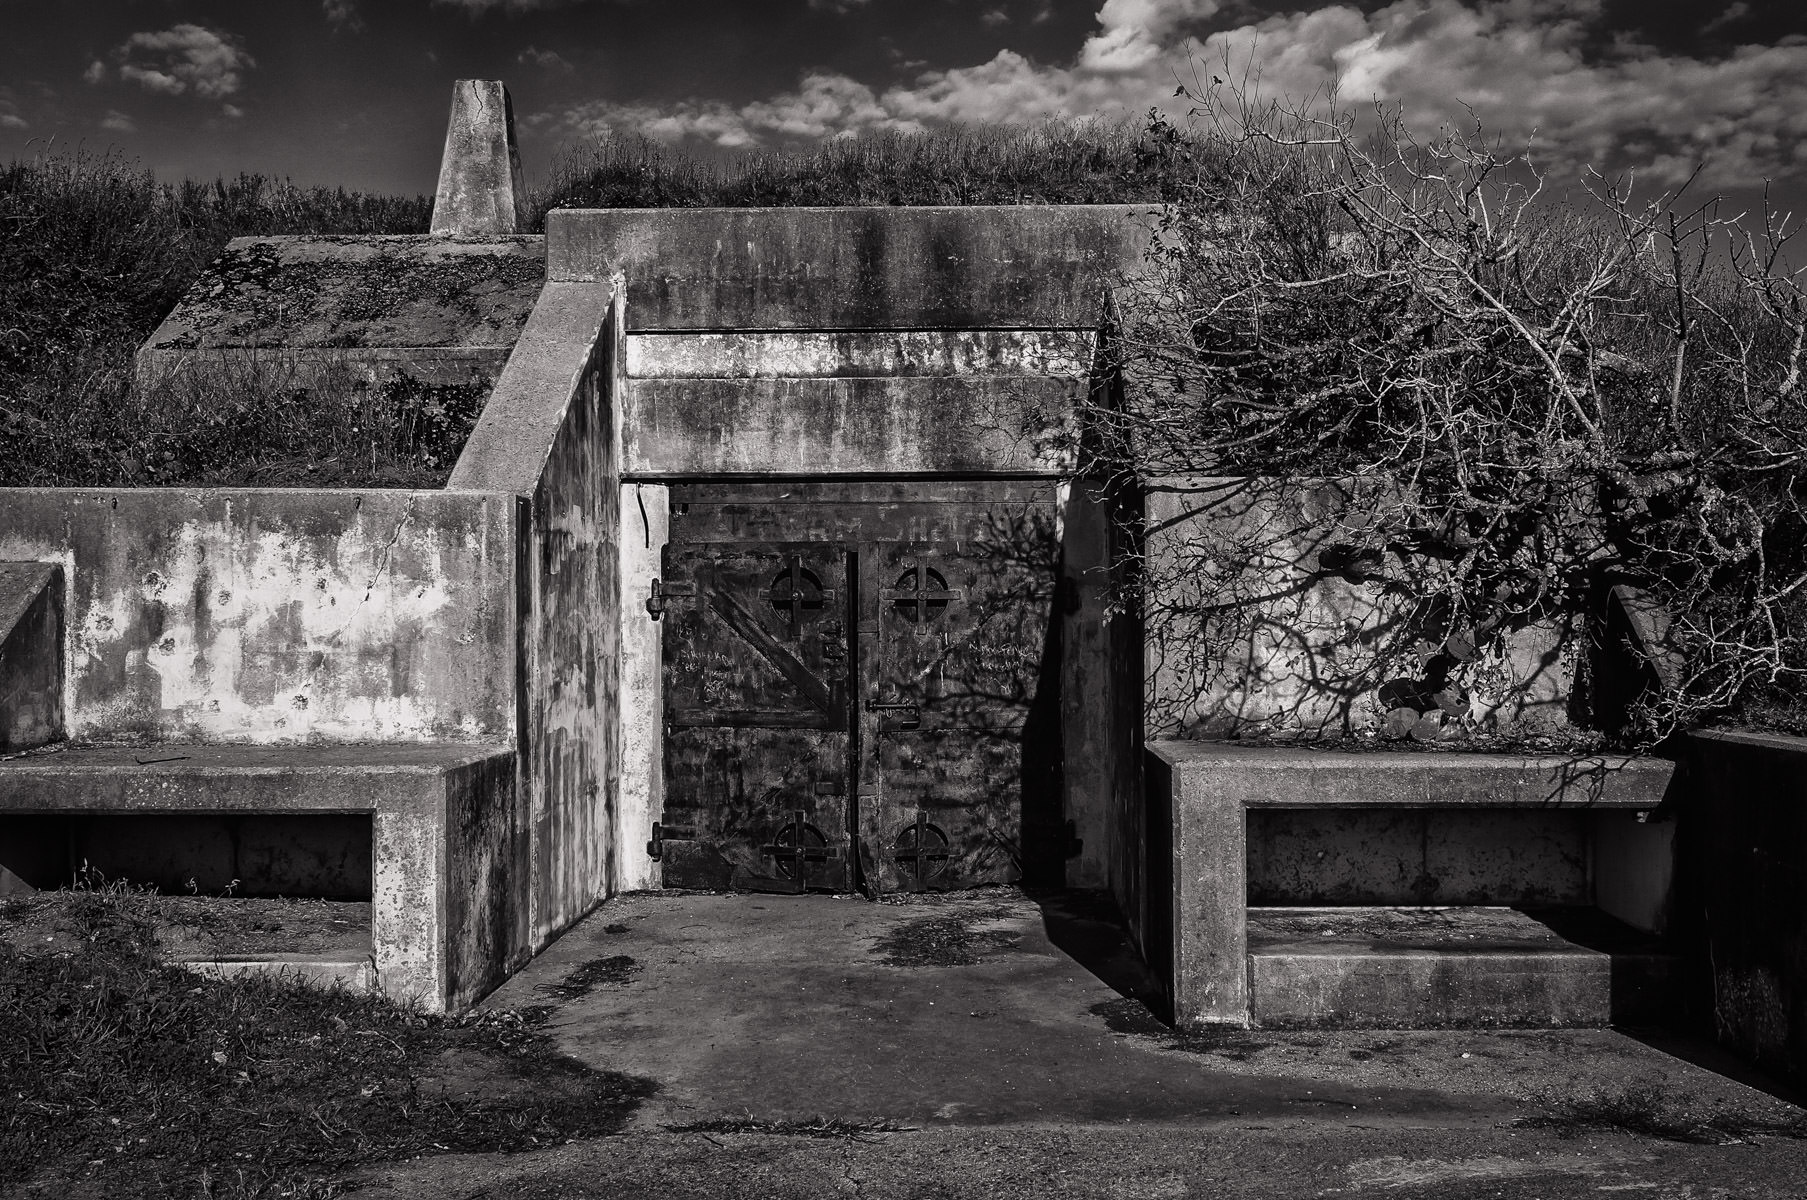 One of the heavily-fortified entrances to Battery 236, located at Fort Travis, Bolivar Peninsula, Texas.  This World War II-era fort was tasked with protecting the Houston Ship Channel from possible enemy incursions.